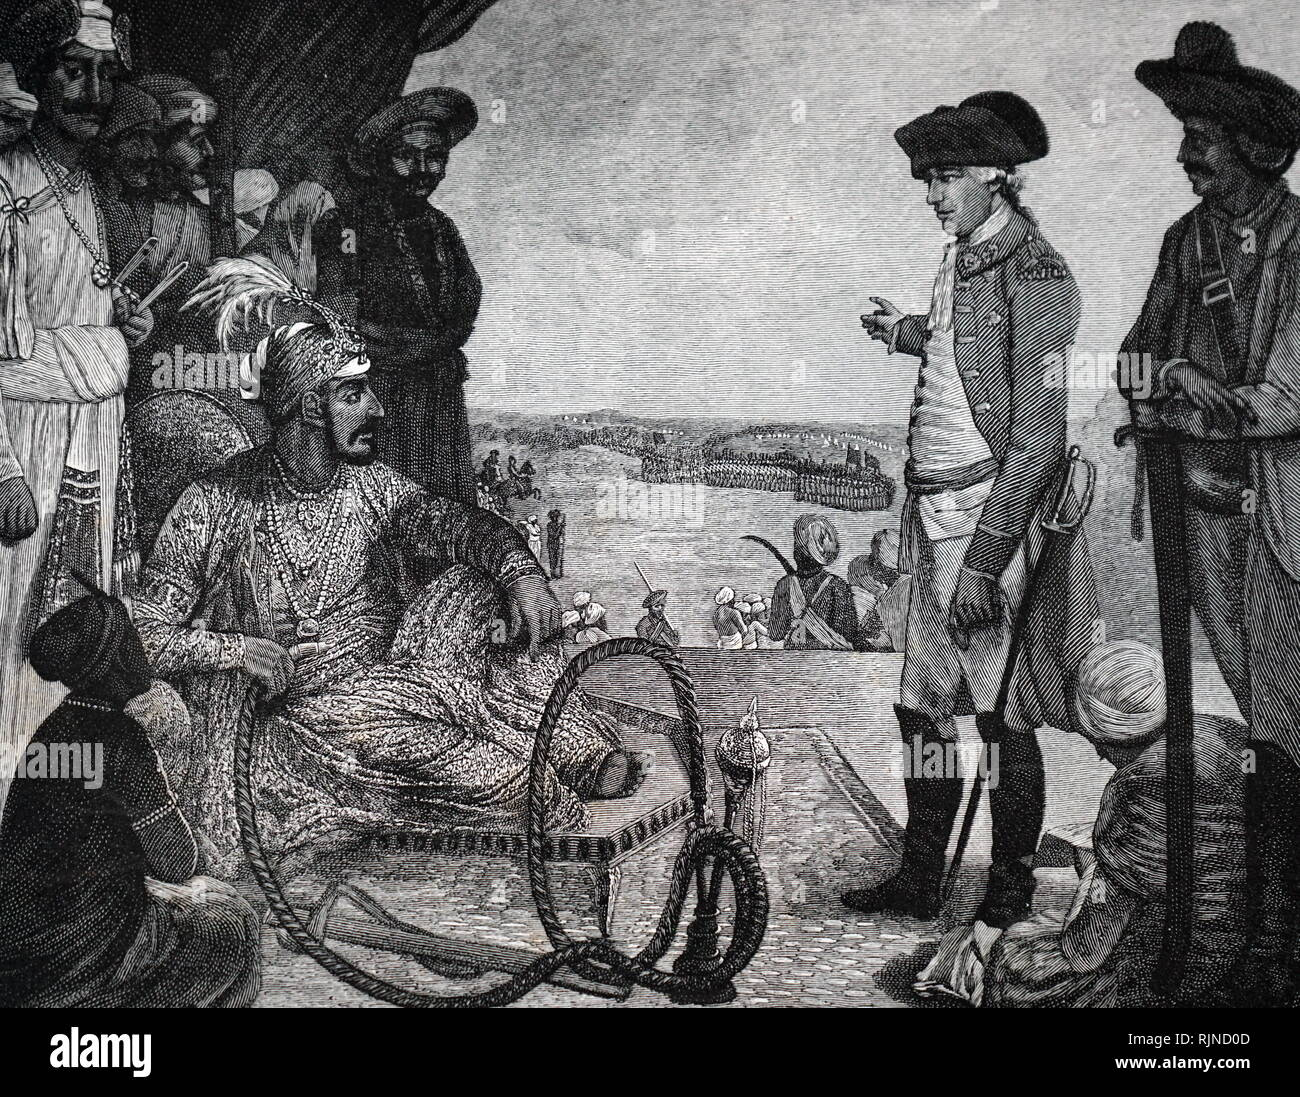 A woodcut engraving depicting a Shah Allum II, Mogul of Hindustan reviewing the East India Company's troops. Dated 18th century - Stock Image